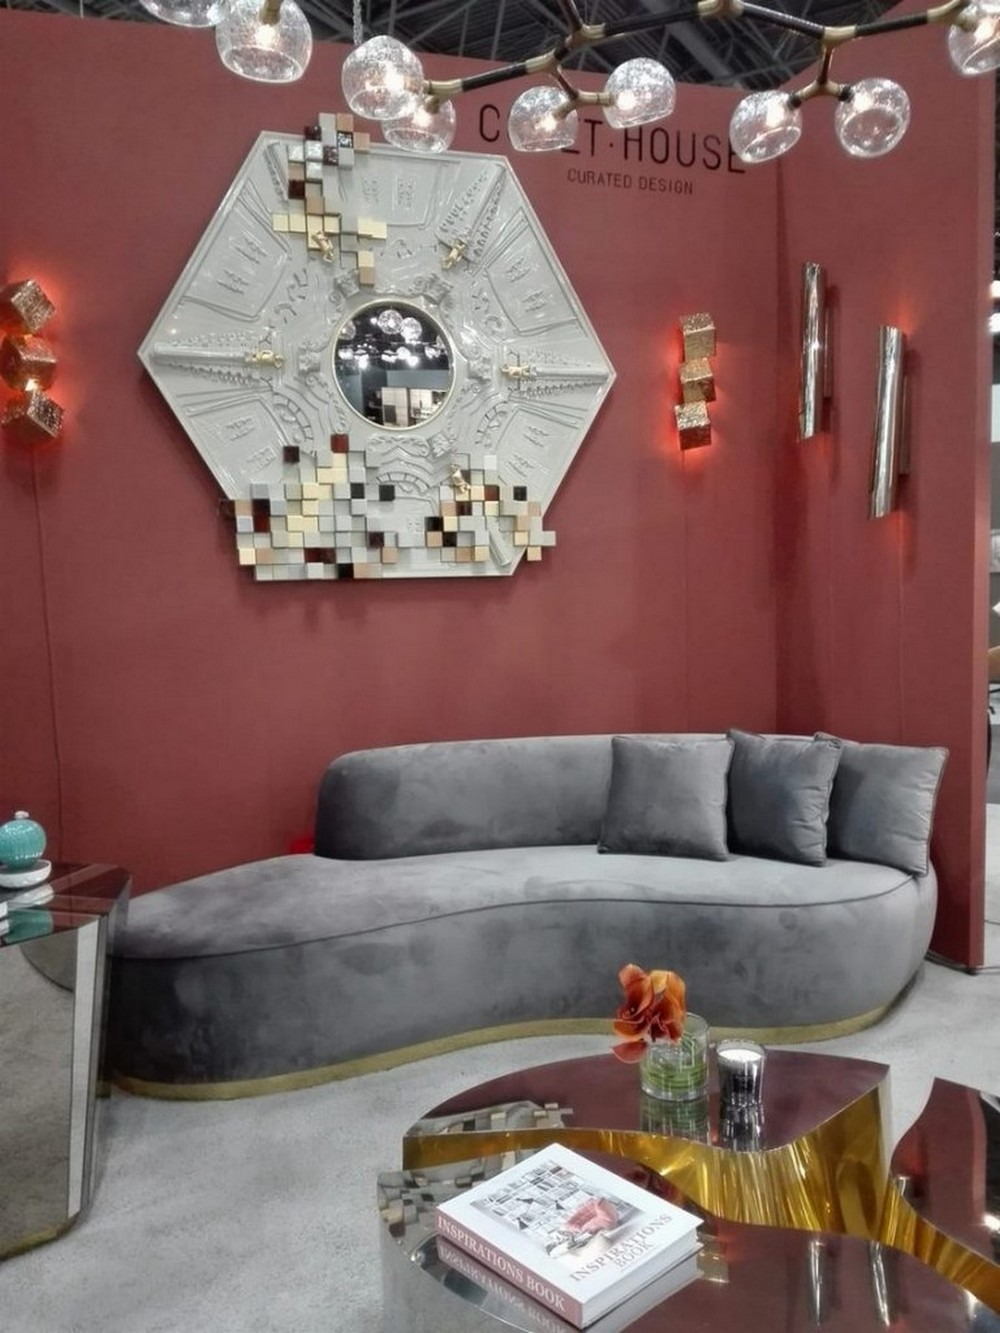 icff 2019 ICFF 2019: have a look at all the highlights from the Design Fair ICFF 2019 The Biggest Highlights From The New York City Design Fair 5